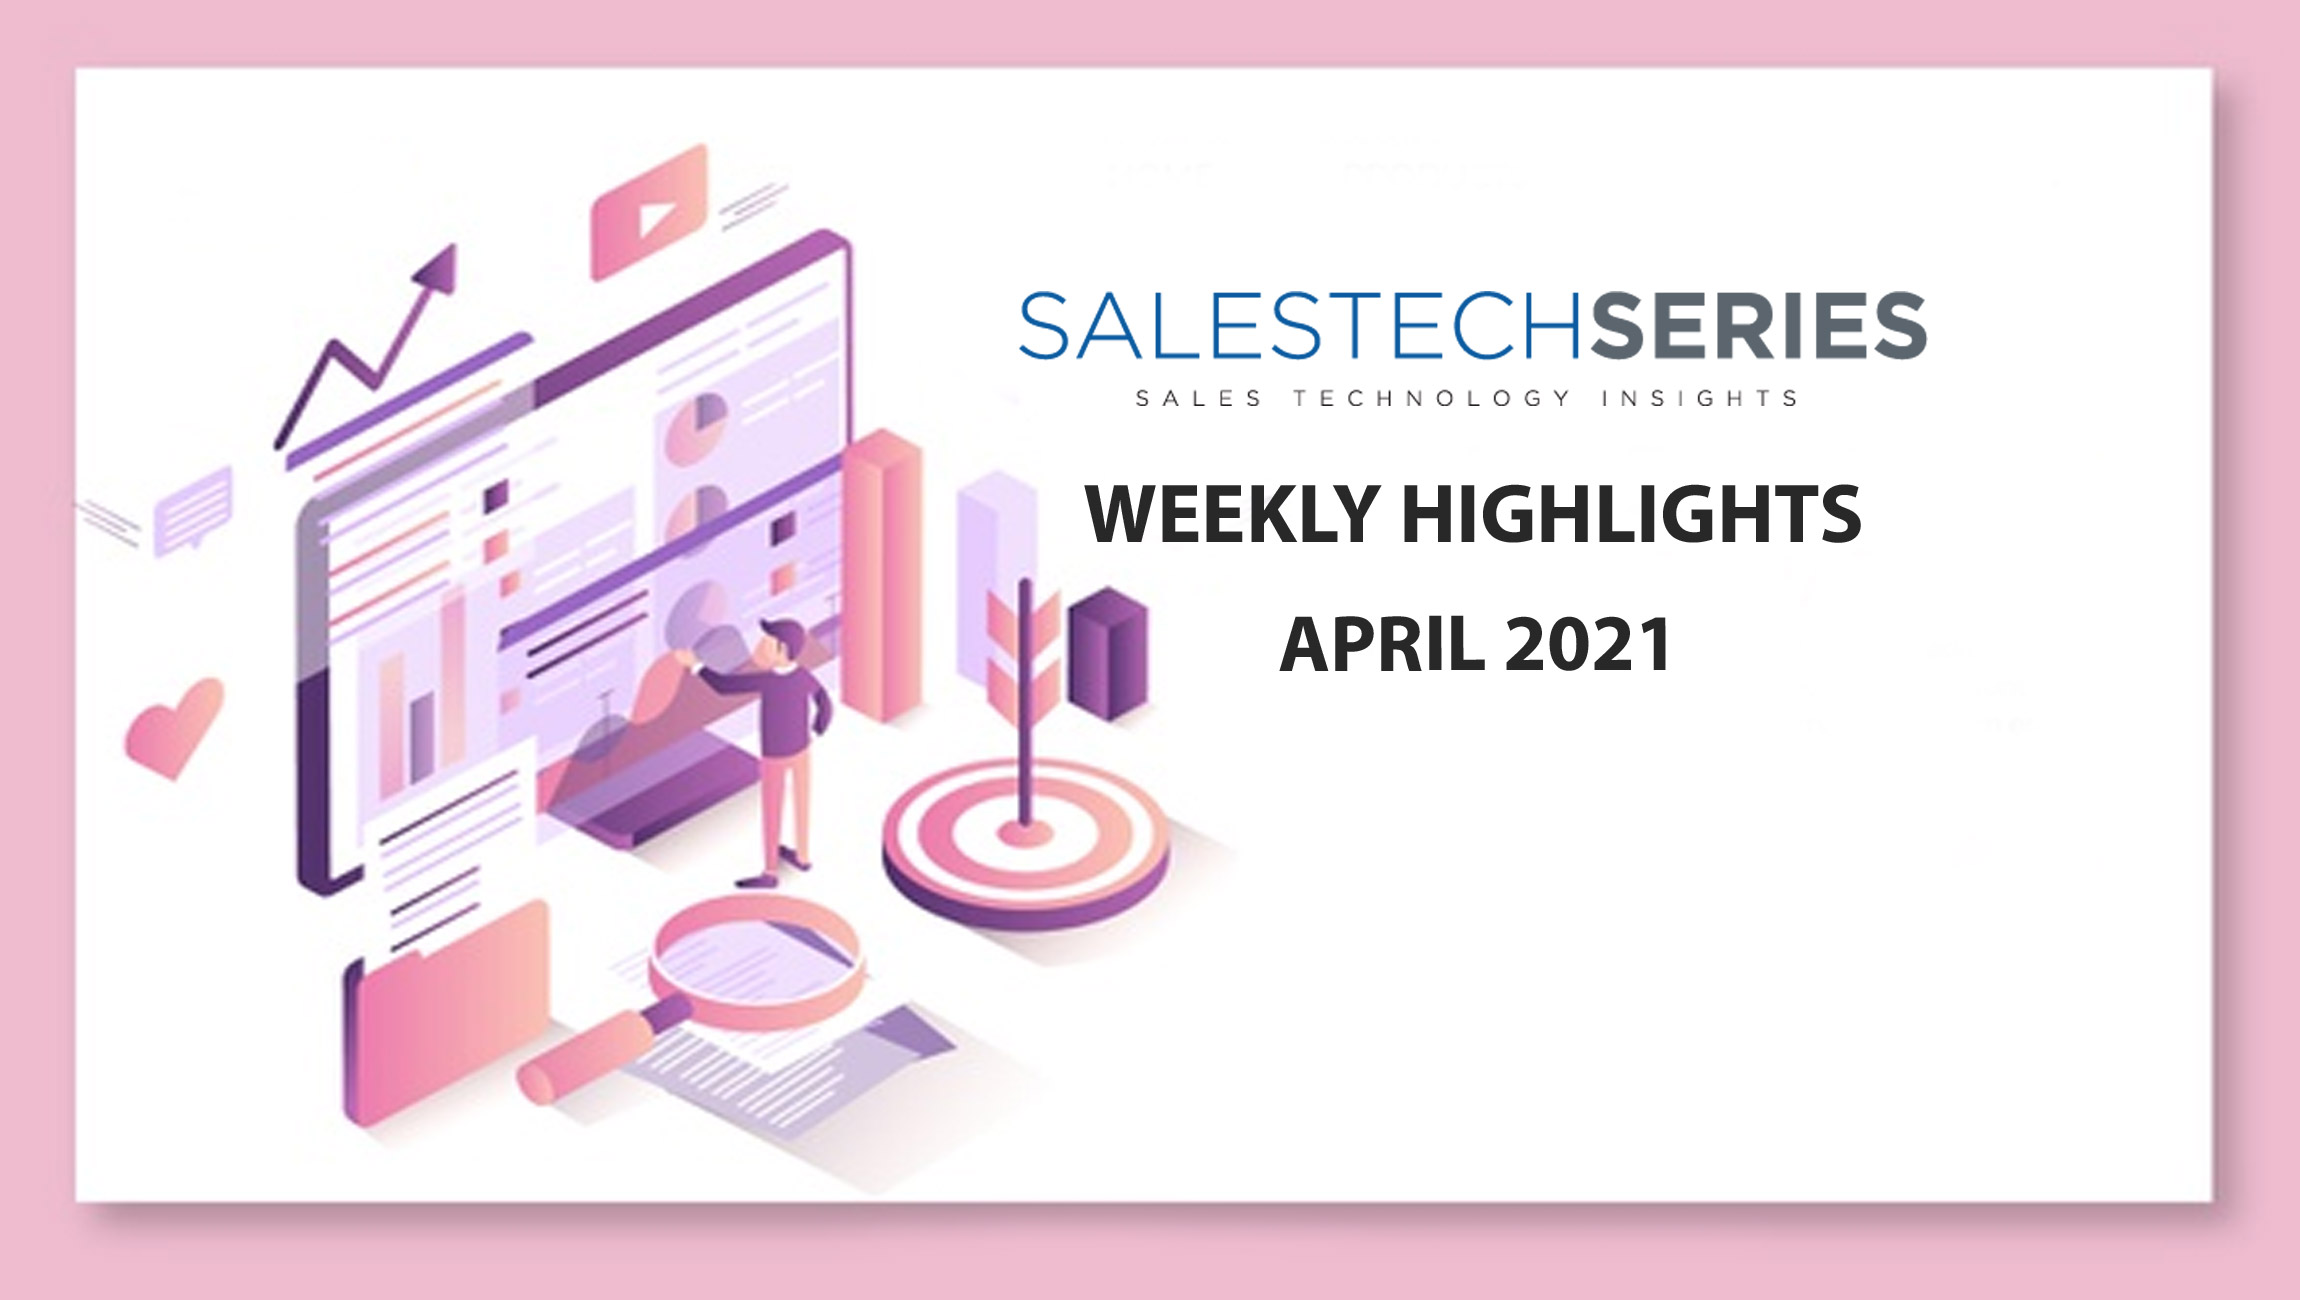 Sales Technology Highlights f The Week: 19th-April-2021: Featuring Chili Piper, TeamViewer, Chorus.ai, Vonage and more!